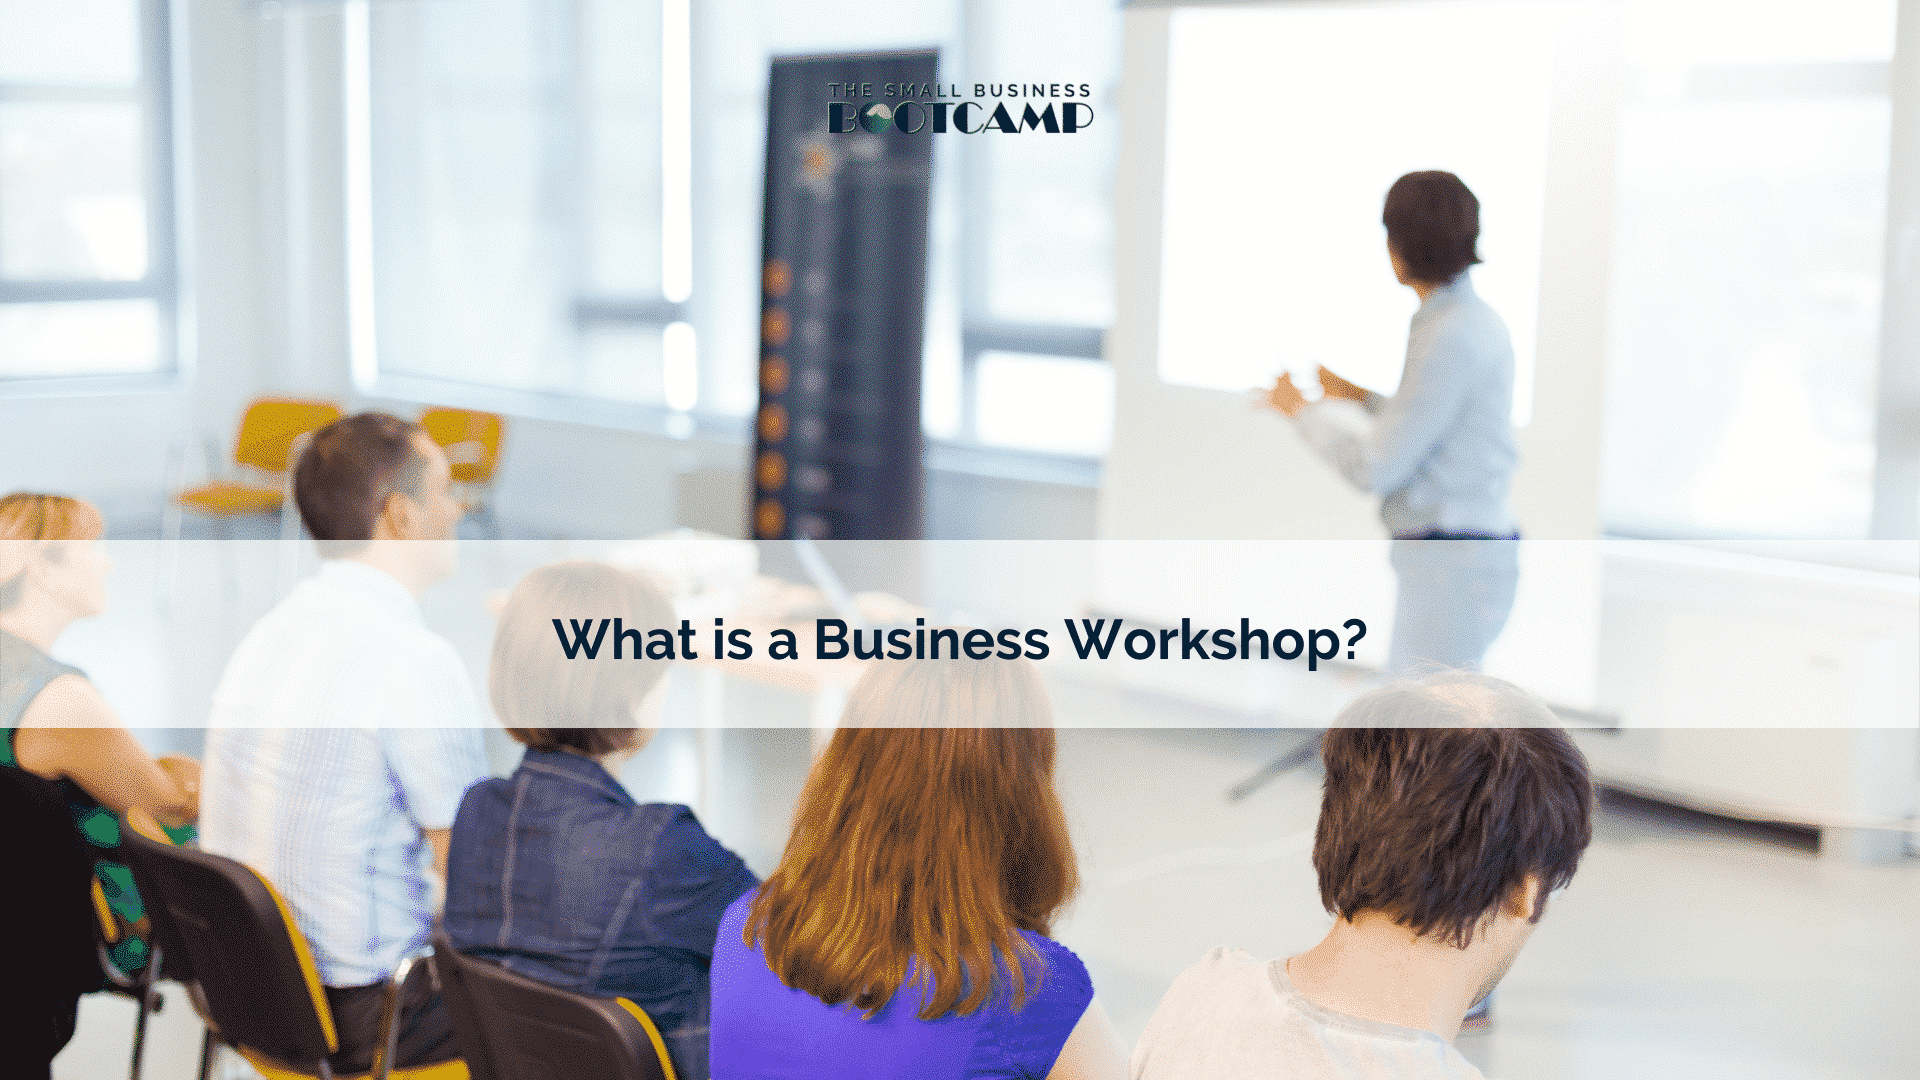 What is a business workshop